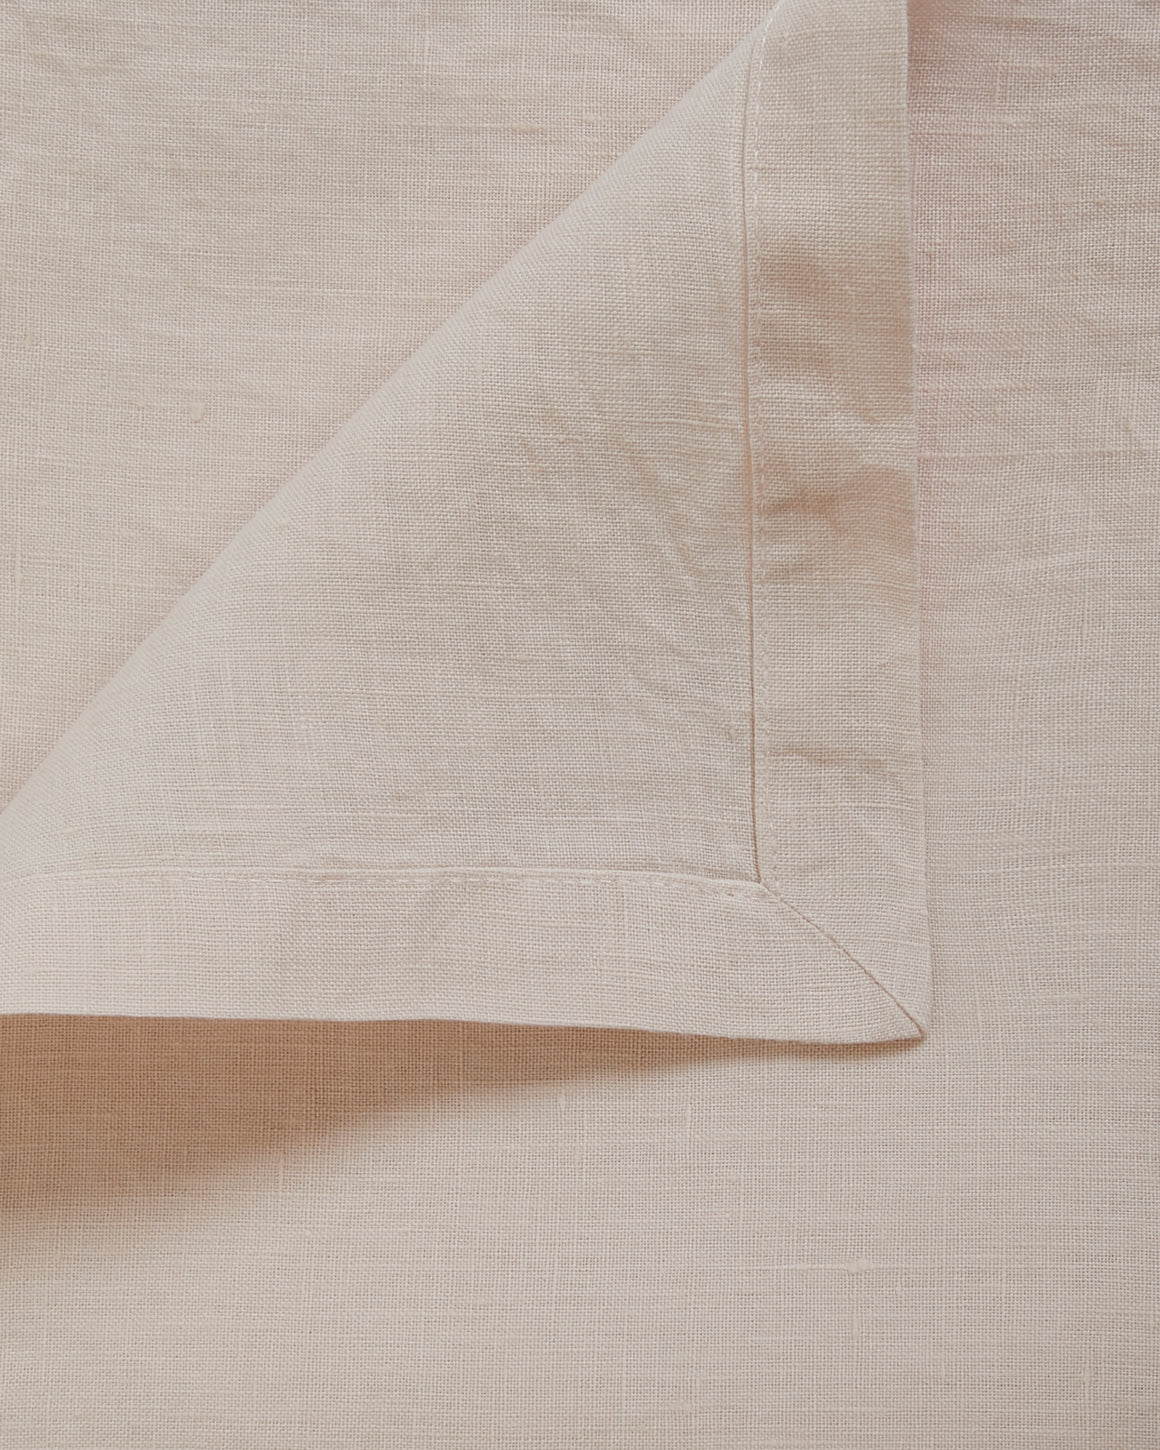 Berkeley Linen Table Napkins (Set of 4) - Blush